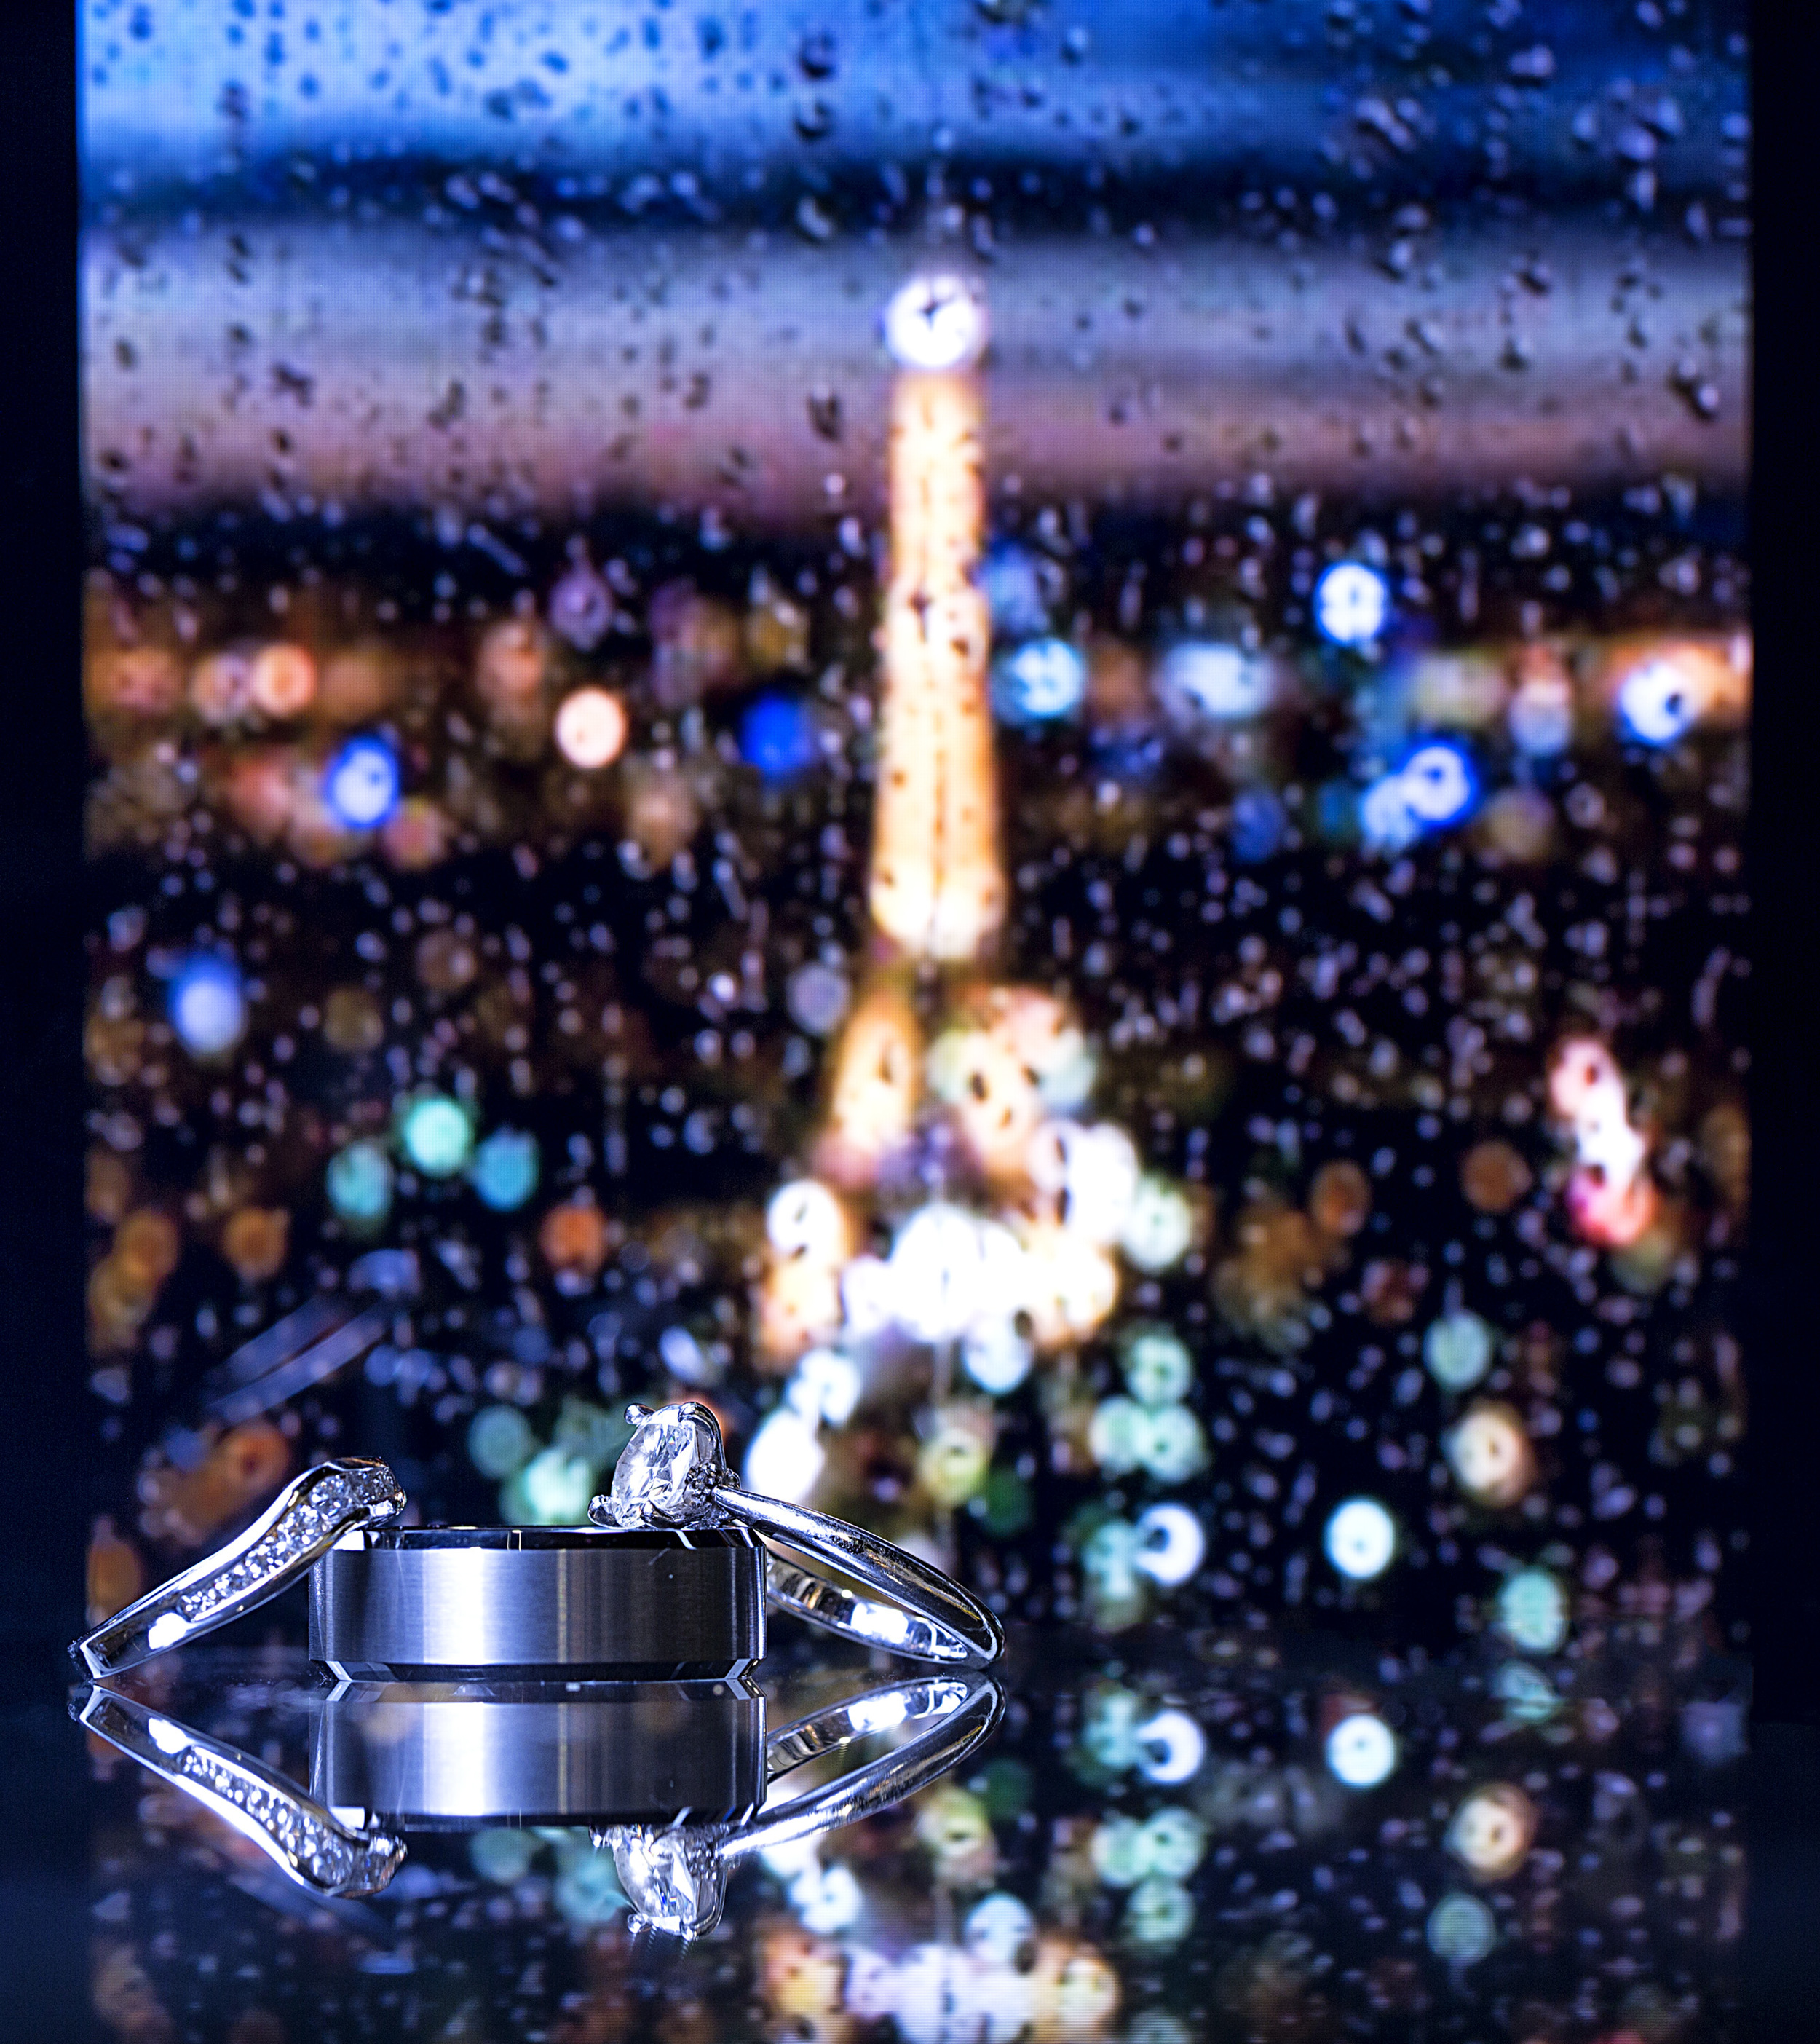 Paris. Looking through the Honeymoon Suite window on a romantic, rainy evening with the Eiffel Tower lighting up the night.